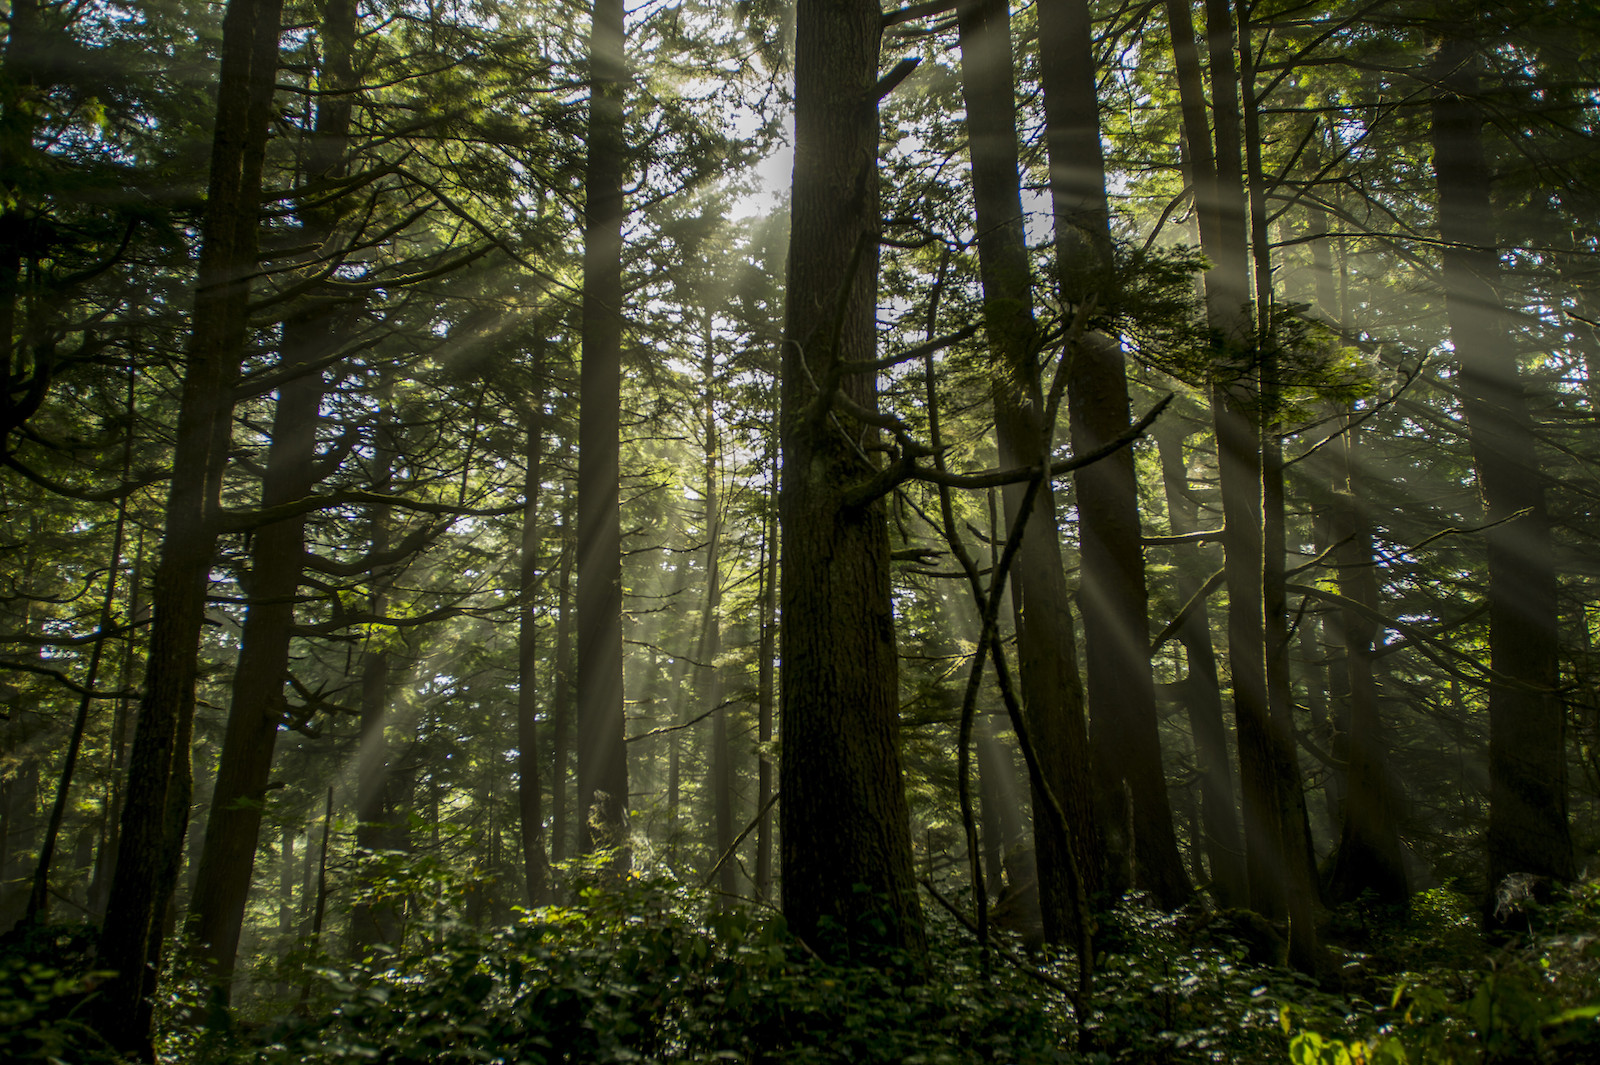 Sunrays breaking through the trees in the temperate